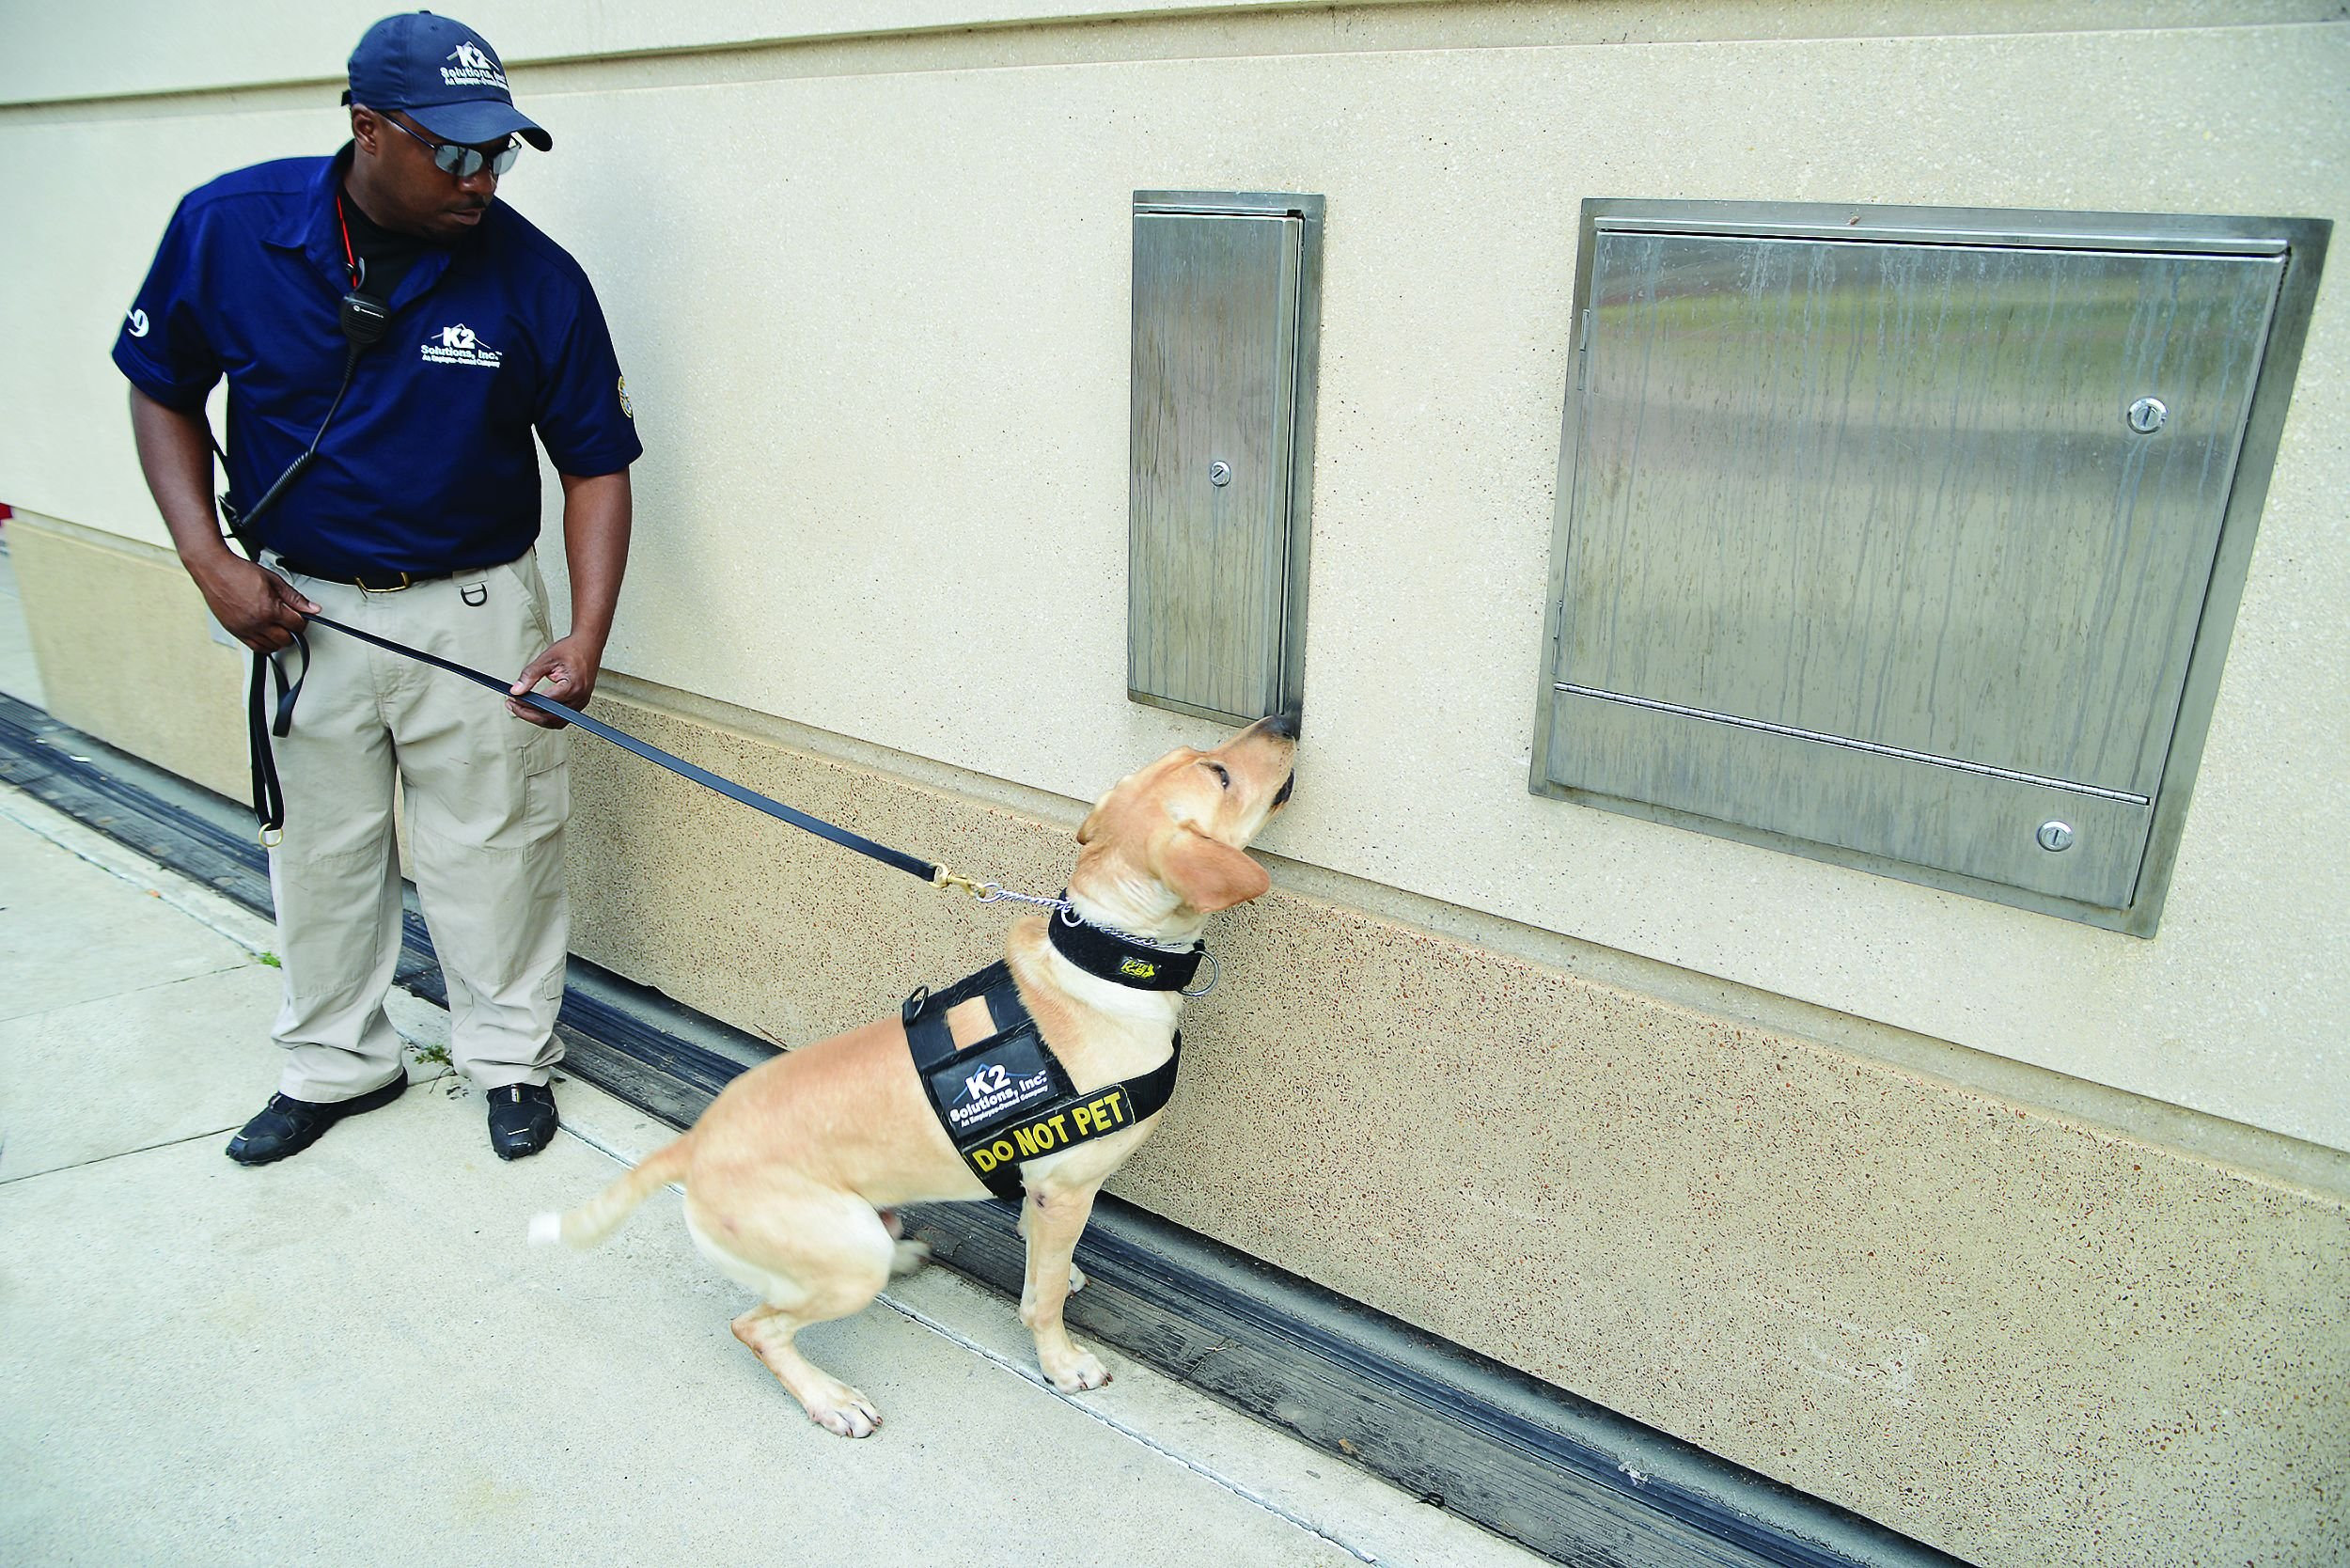 According to K2 Solutions Program Manager Karl Smith, searches by explosive detection dogs have...